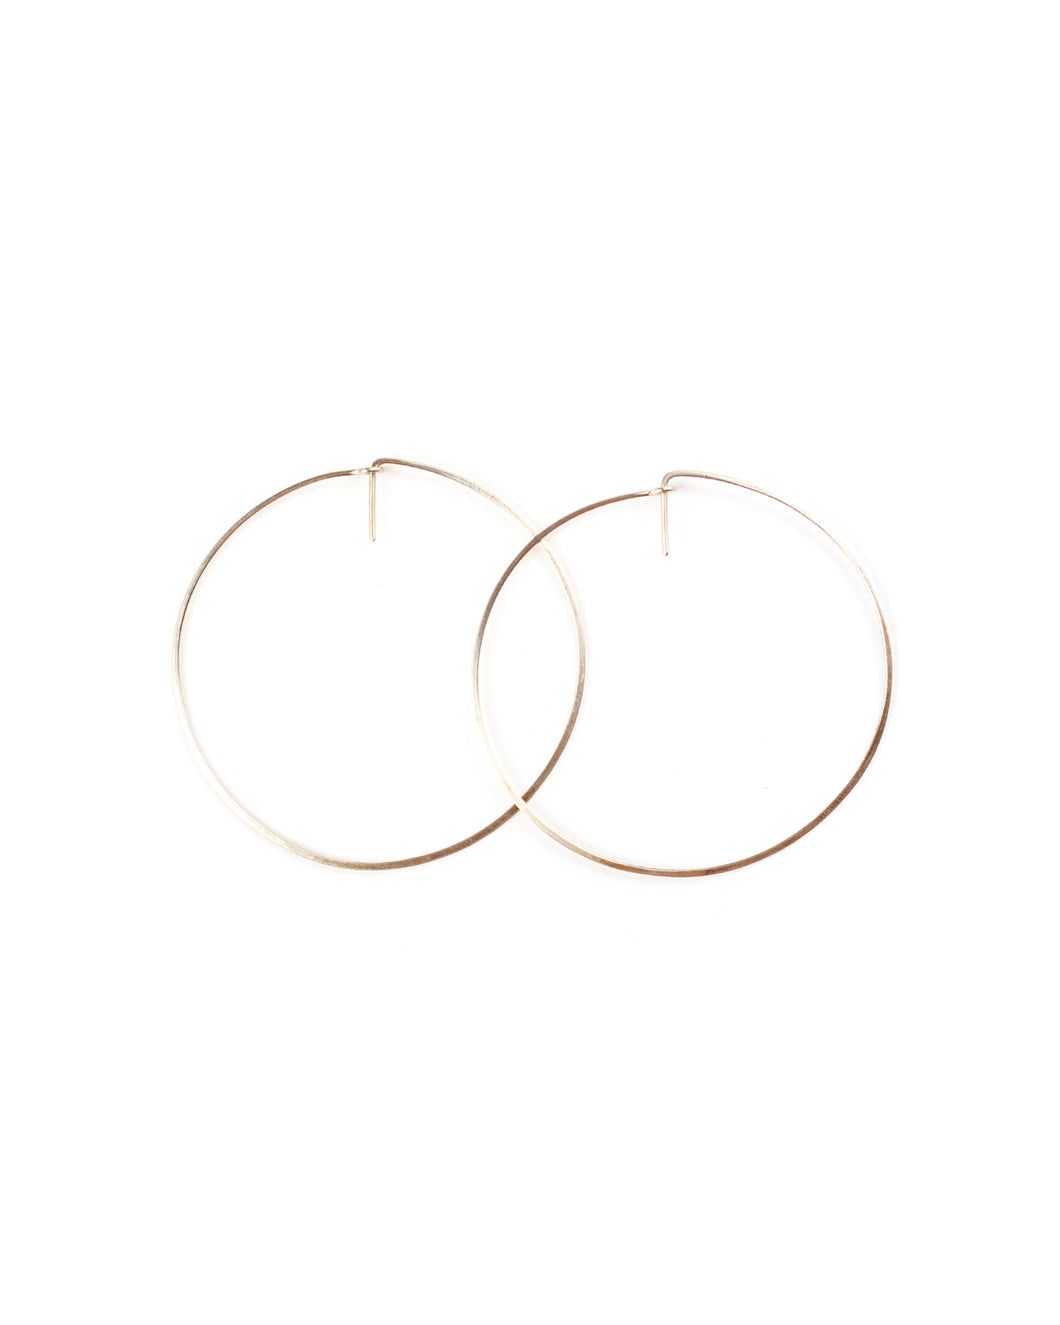 Deco Hoop (gold) - Small